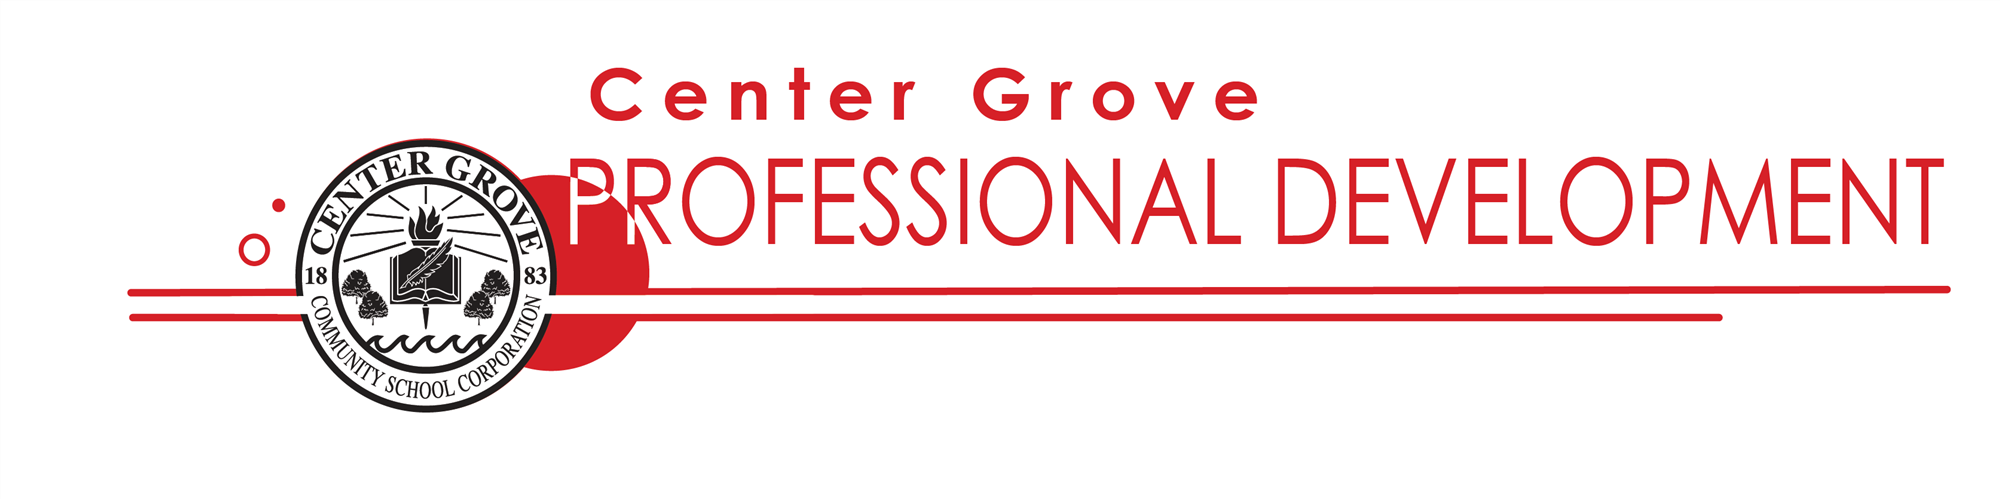 Center Grove Professional Development